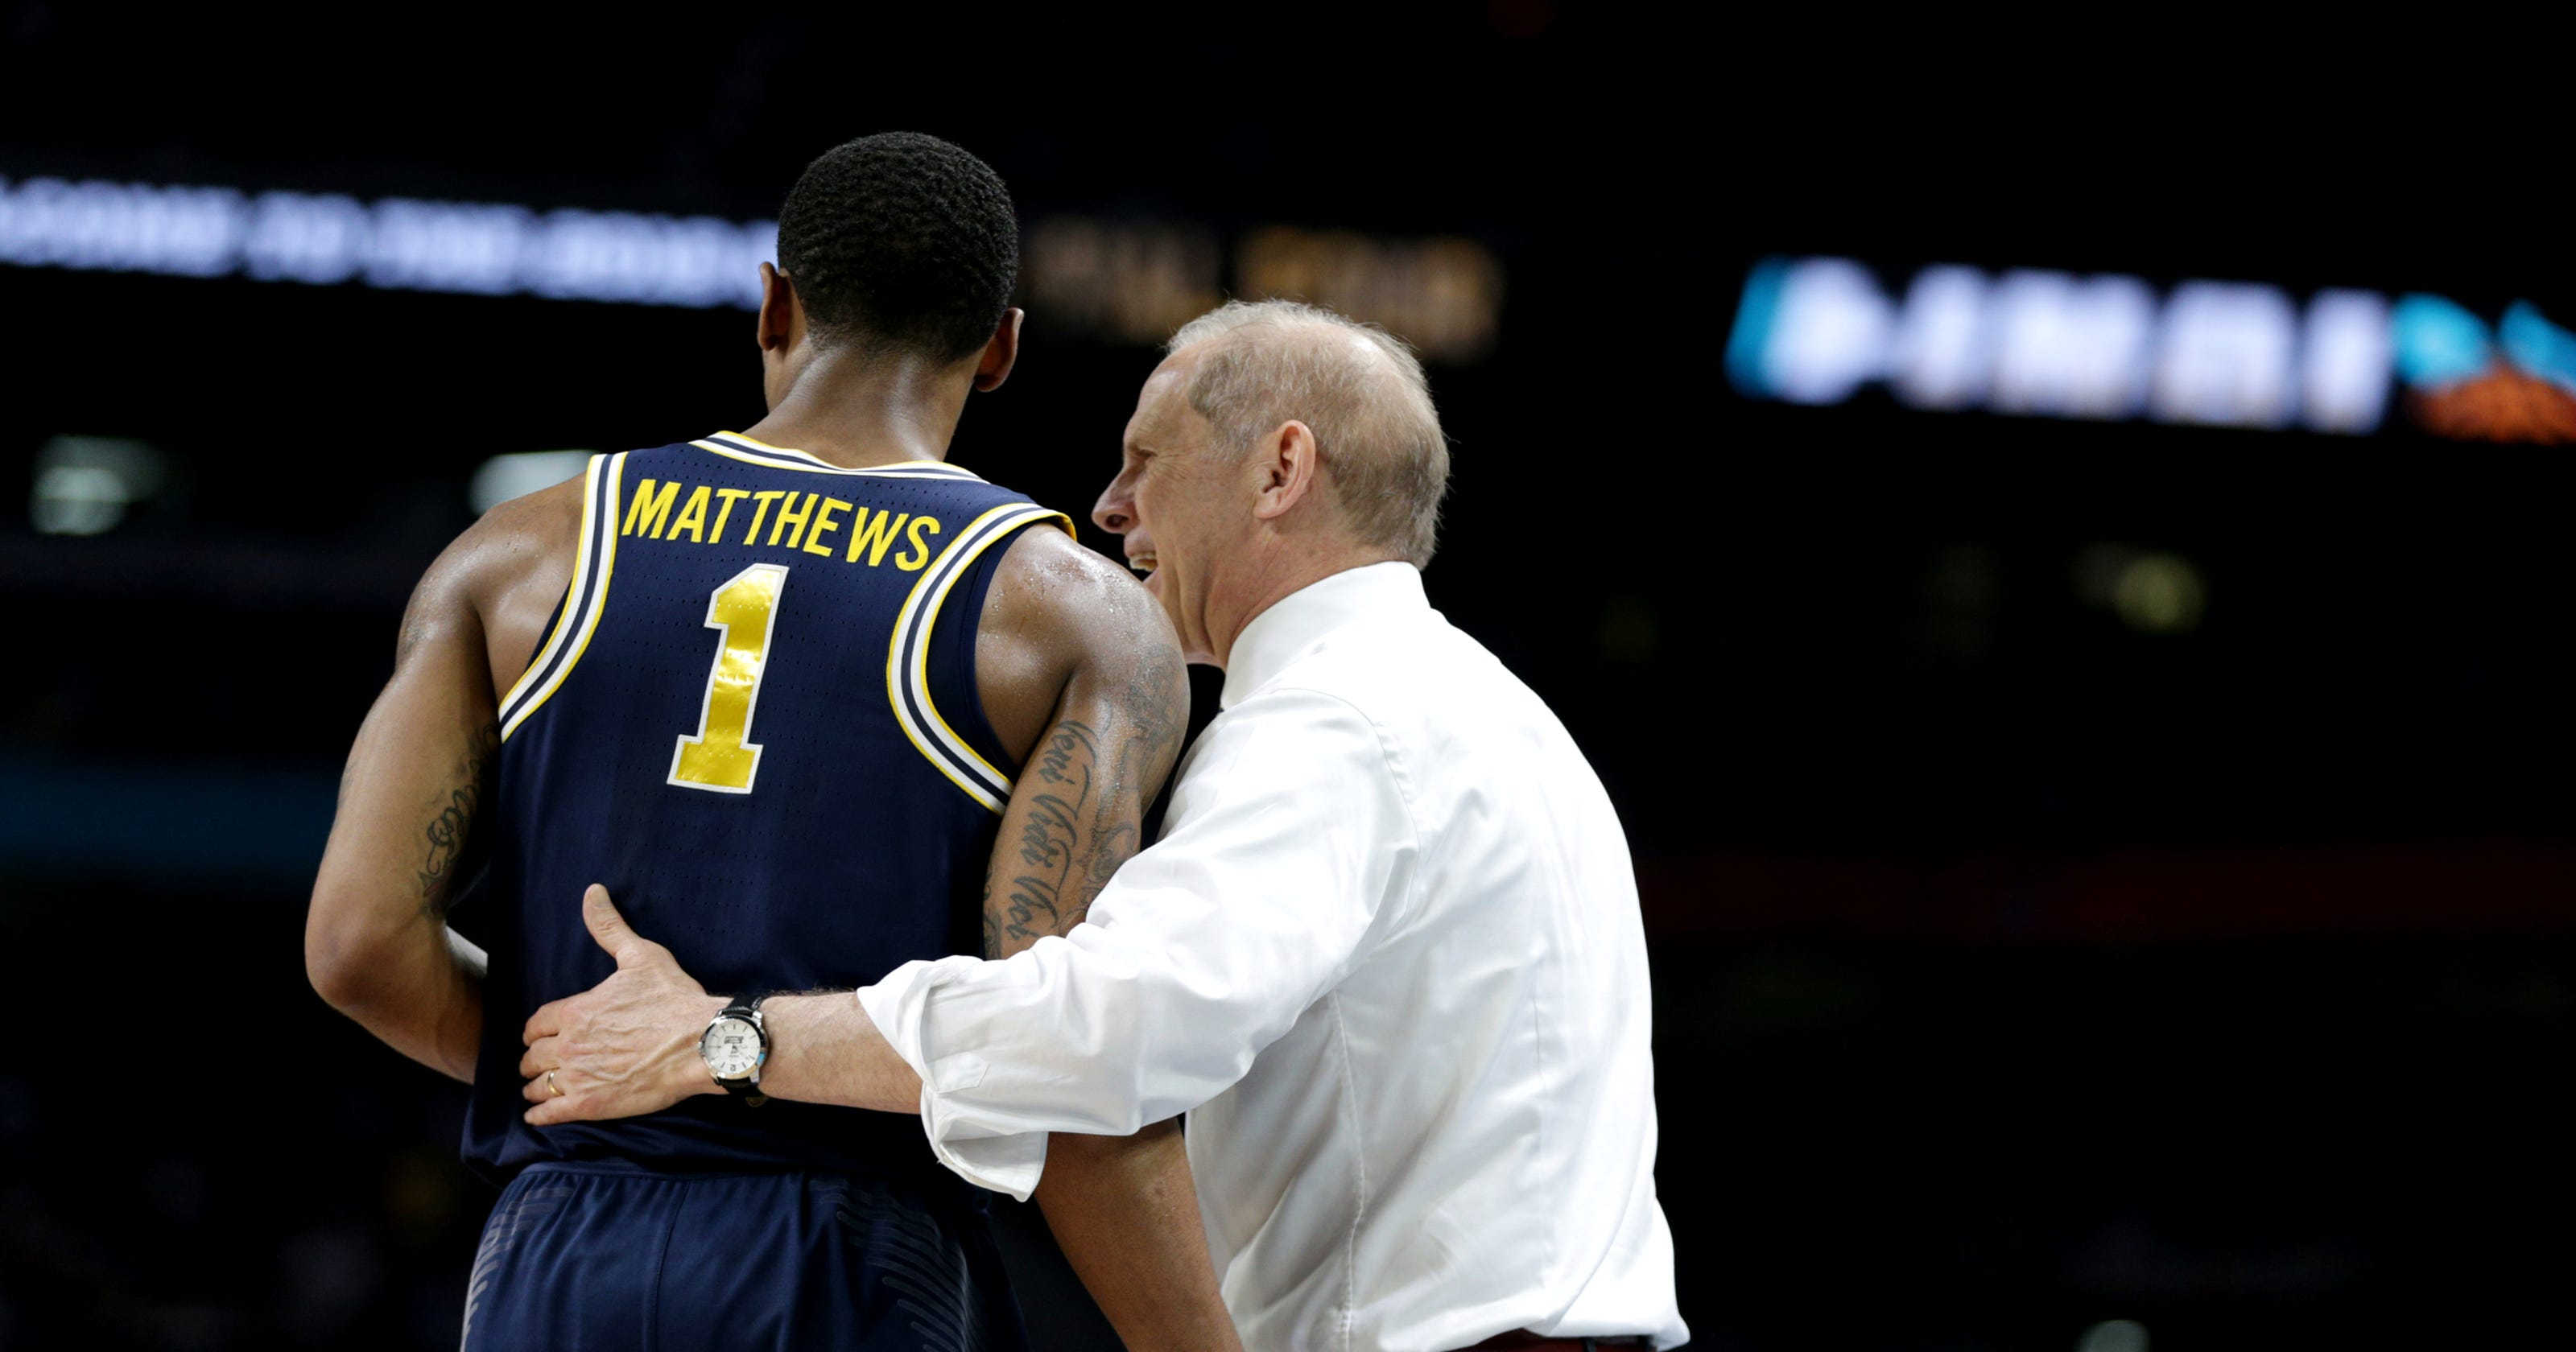 2018-19 Michigan basketball roster: Meet the Wolverines!